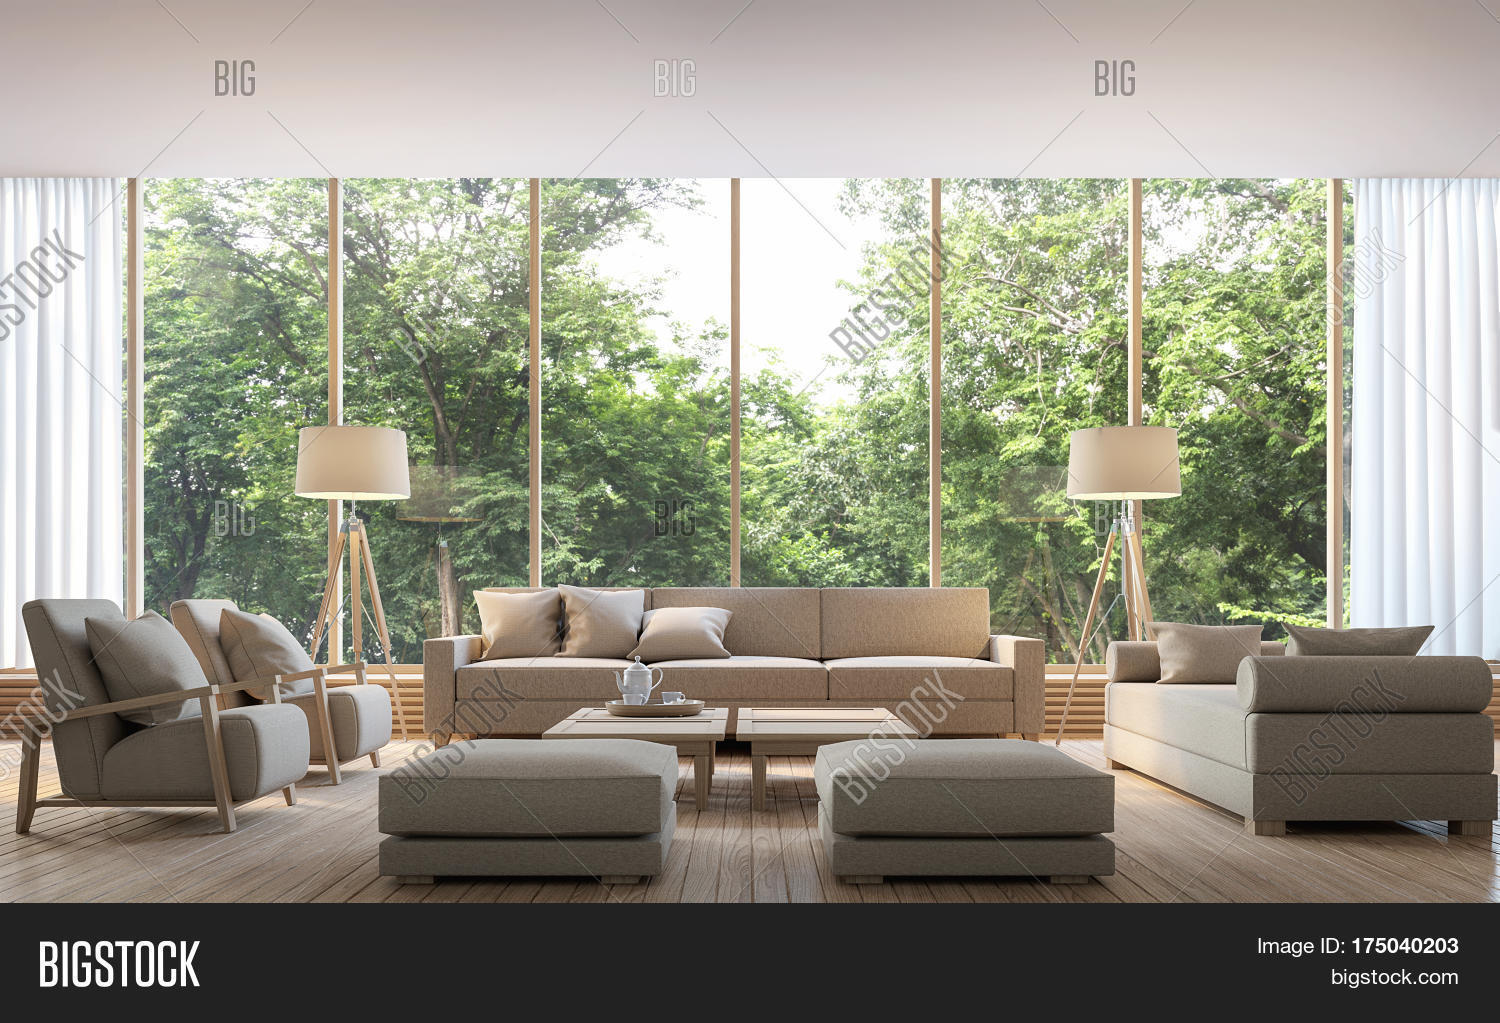 Modern Living Room With Nature View 3d Rendering Image. There Are  Decorations In Room With